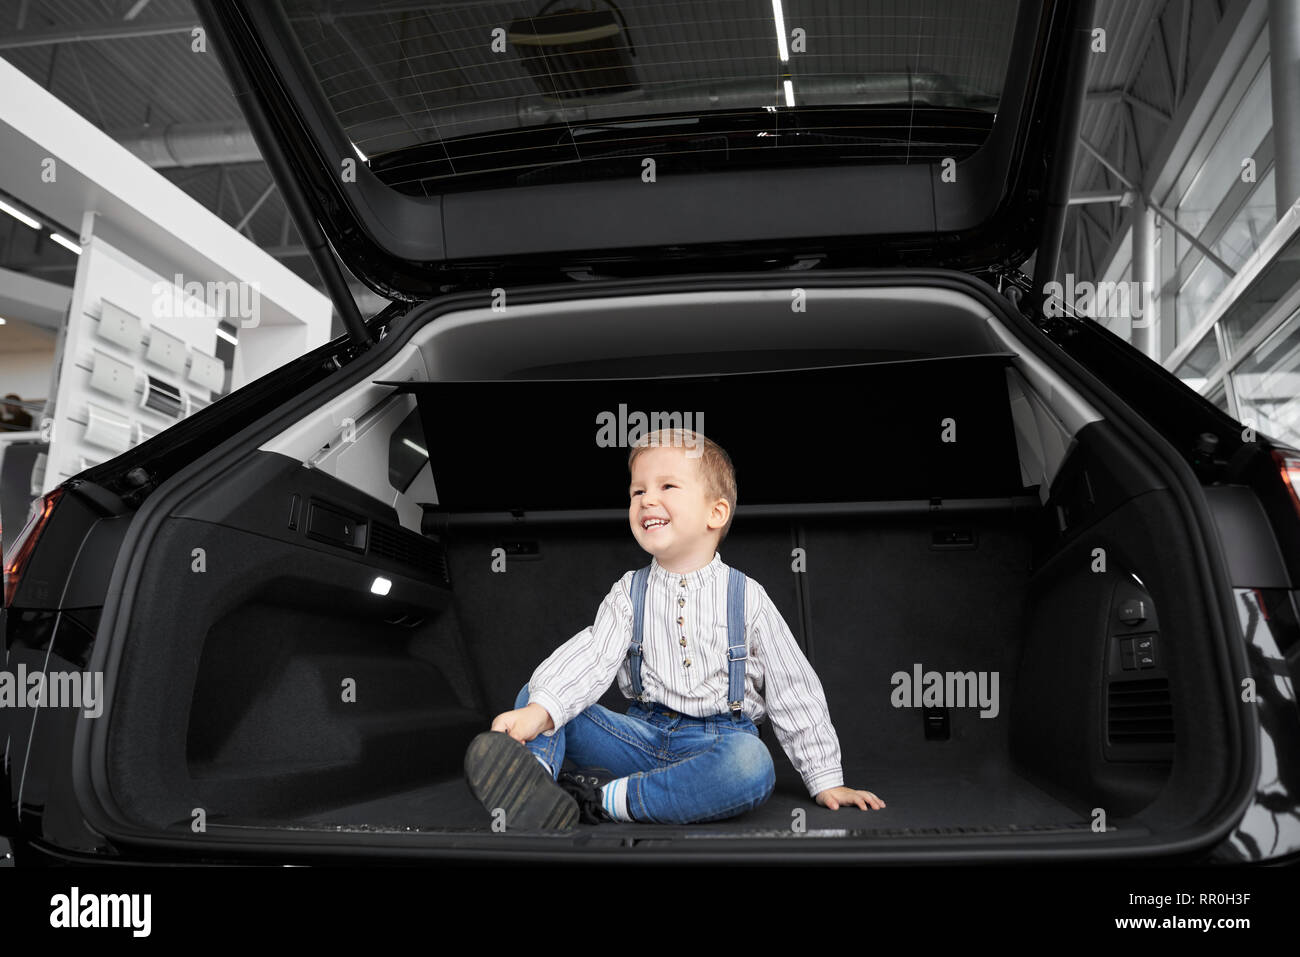 Handsome, cute little boy sitting in luggage space of big, new black automobile. Pretty child posing, looking away and smiling. Happy kid observing vehicle in car trunk. - Stock Image